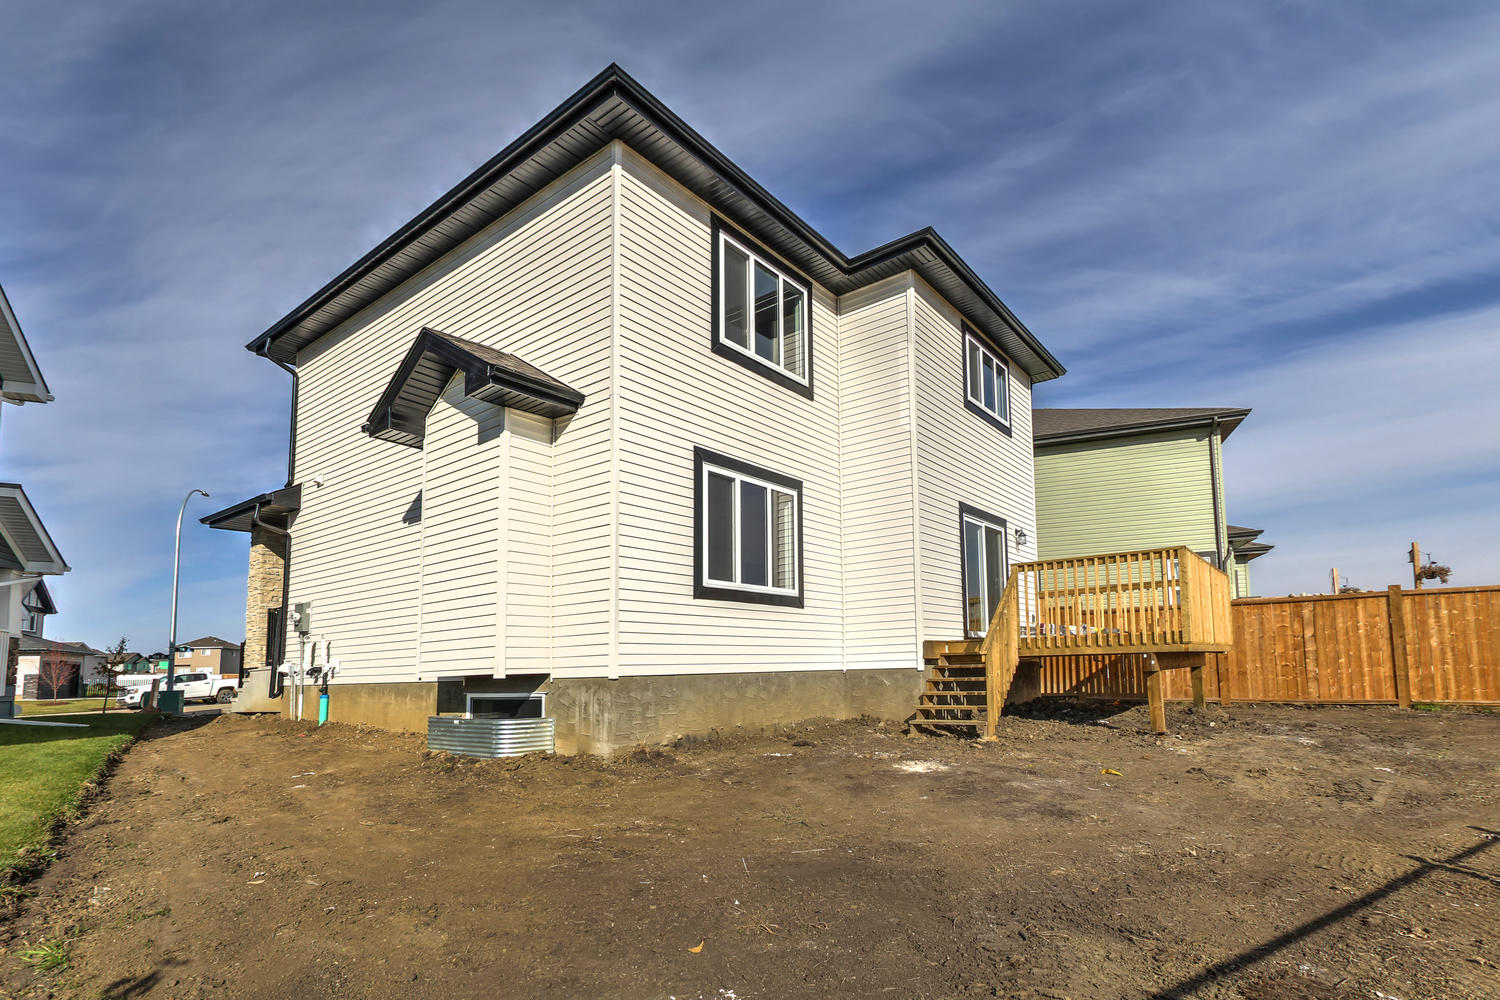 9603 106 Ave Morinville AB T8R-large-065-40-Back of House-1500x1000-72dpi.jpg